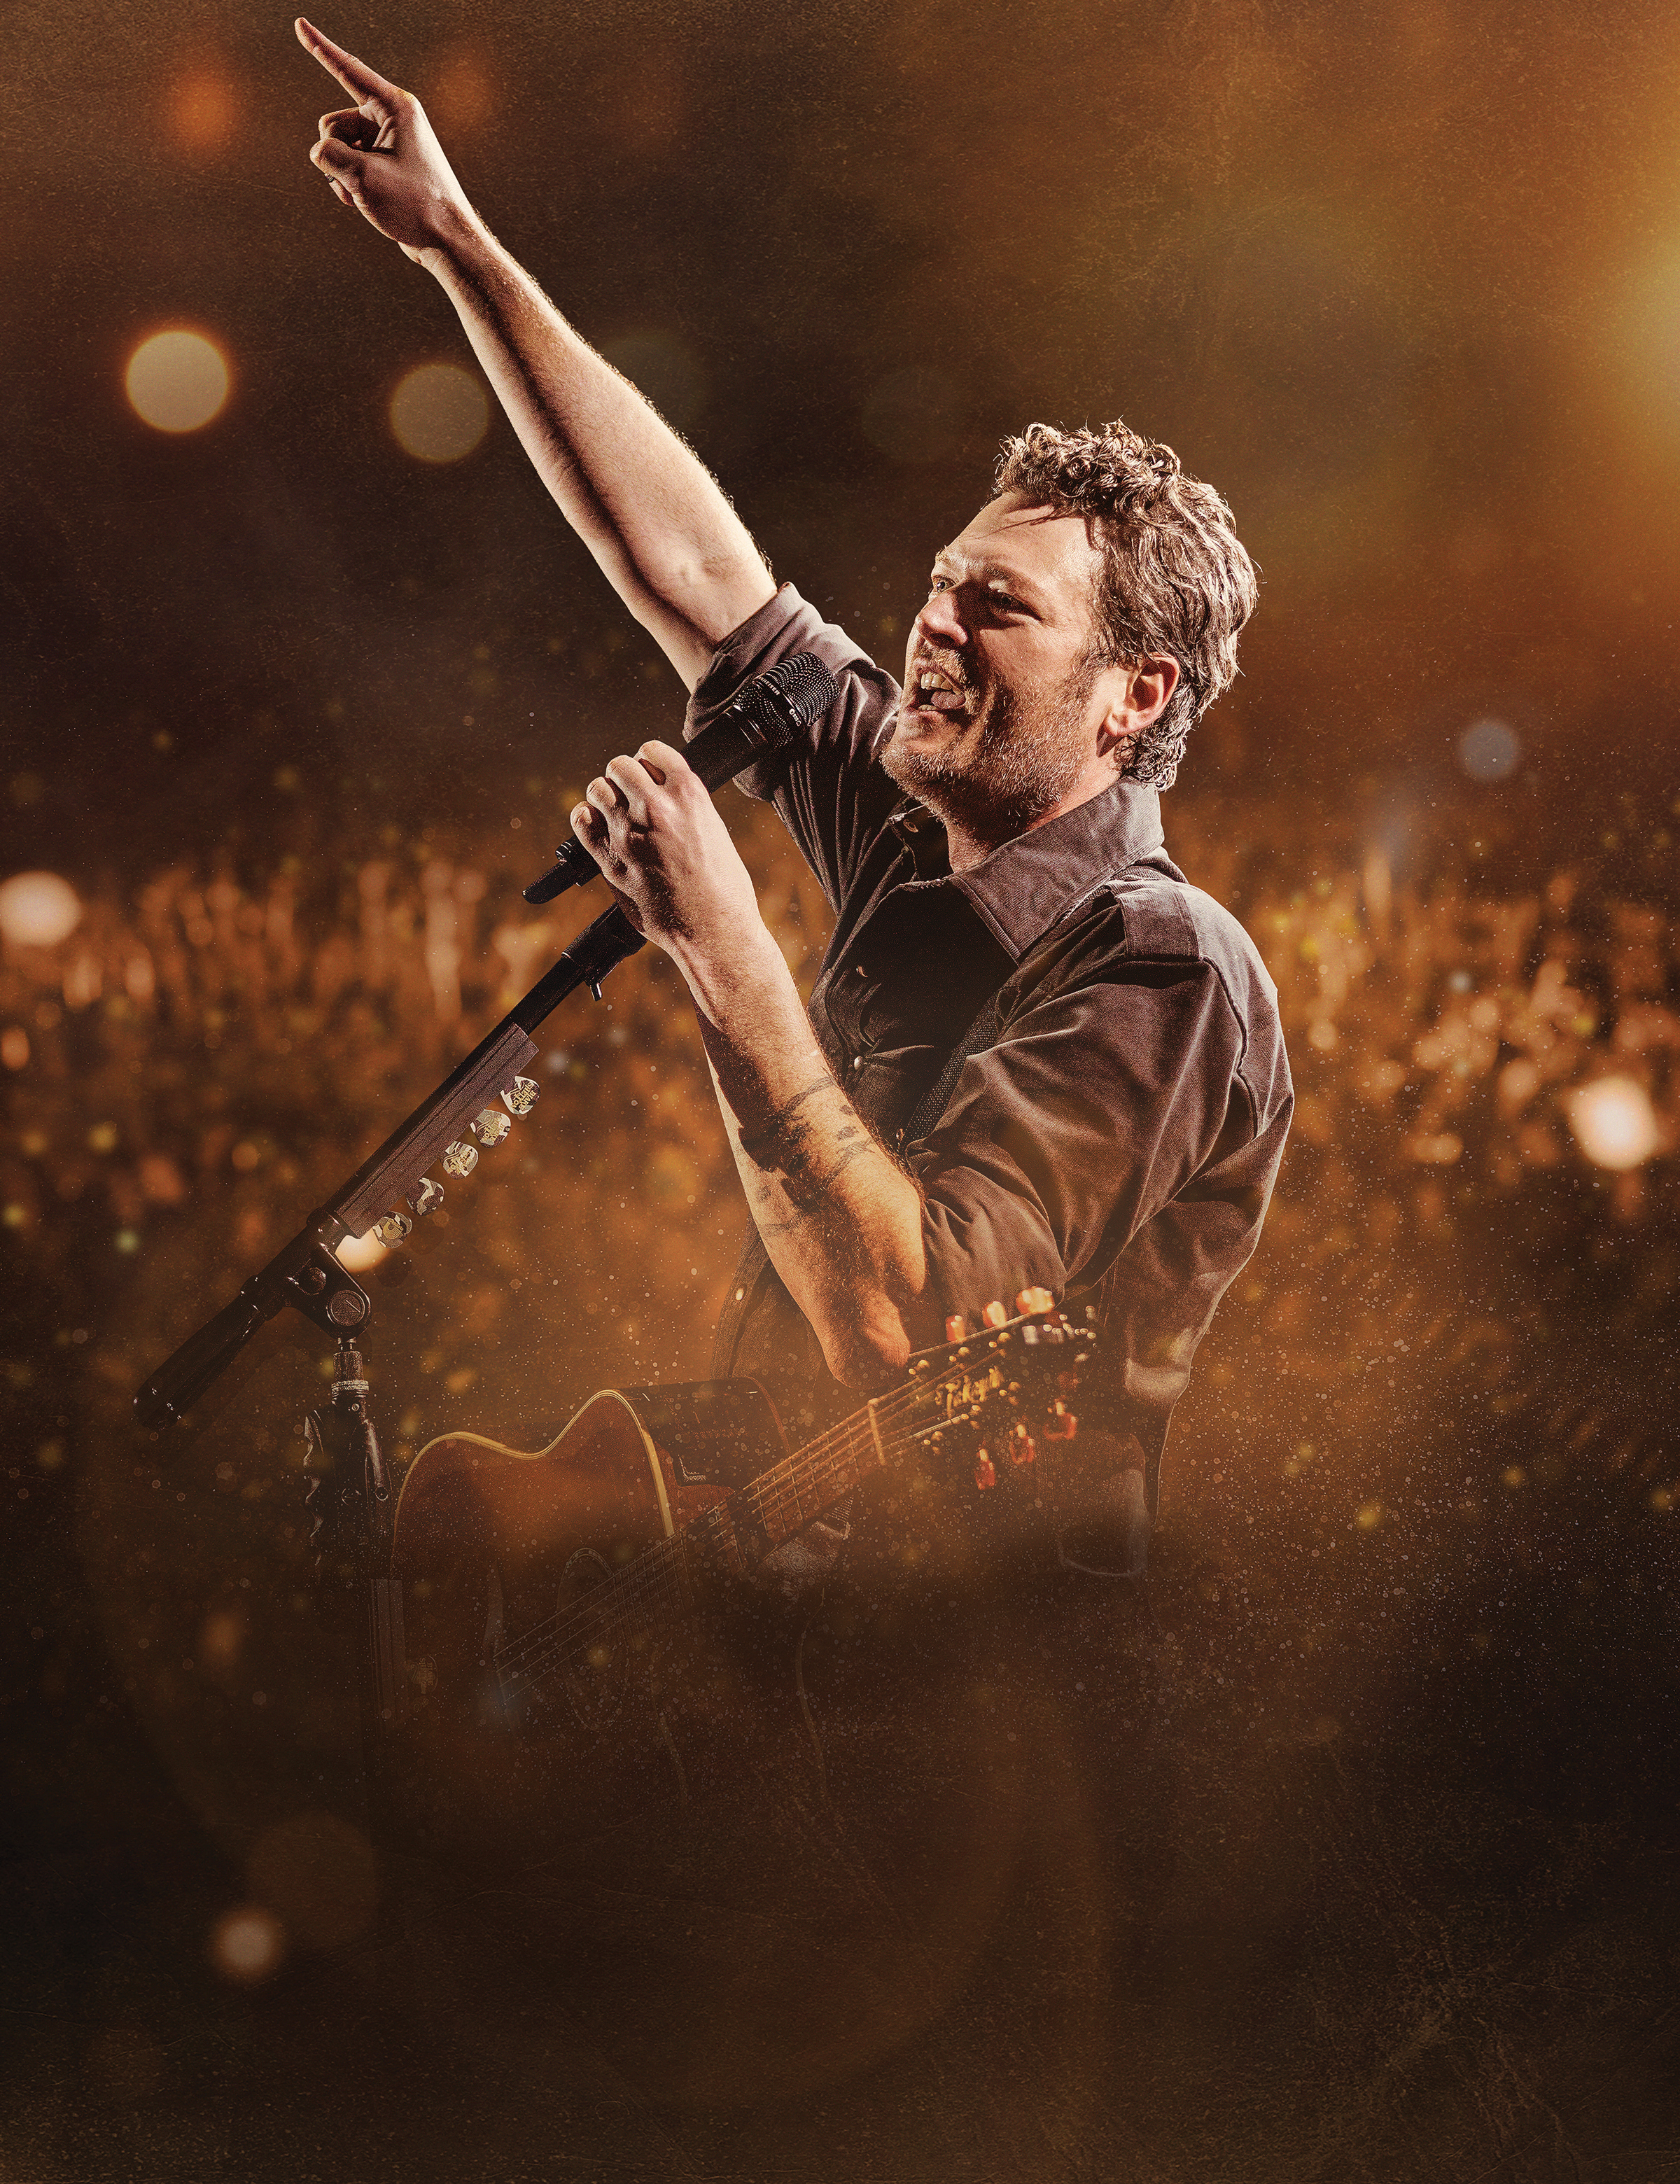 Blake Shelton will perform at Van Andel Arena in February 2018.